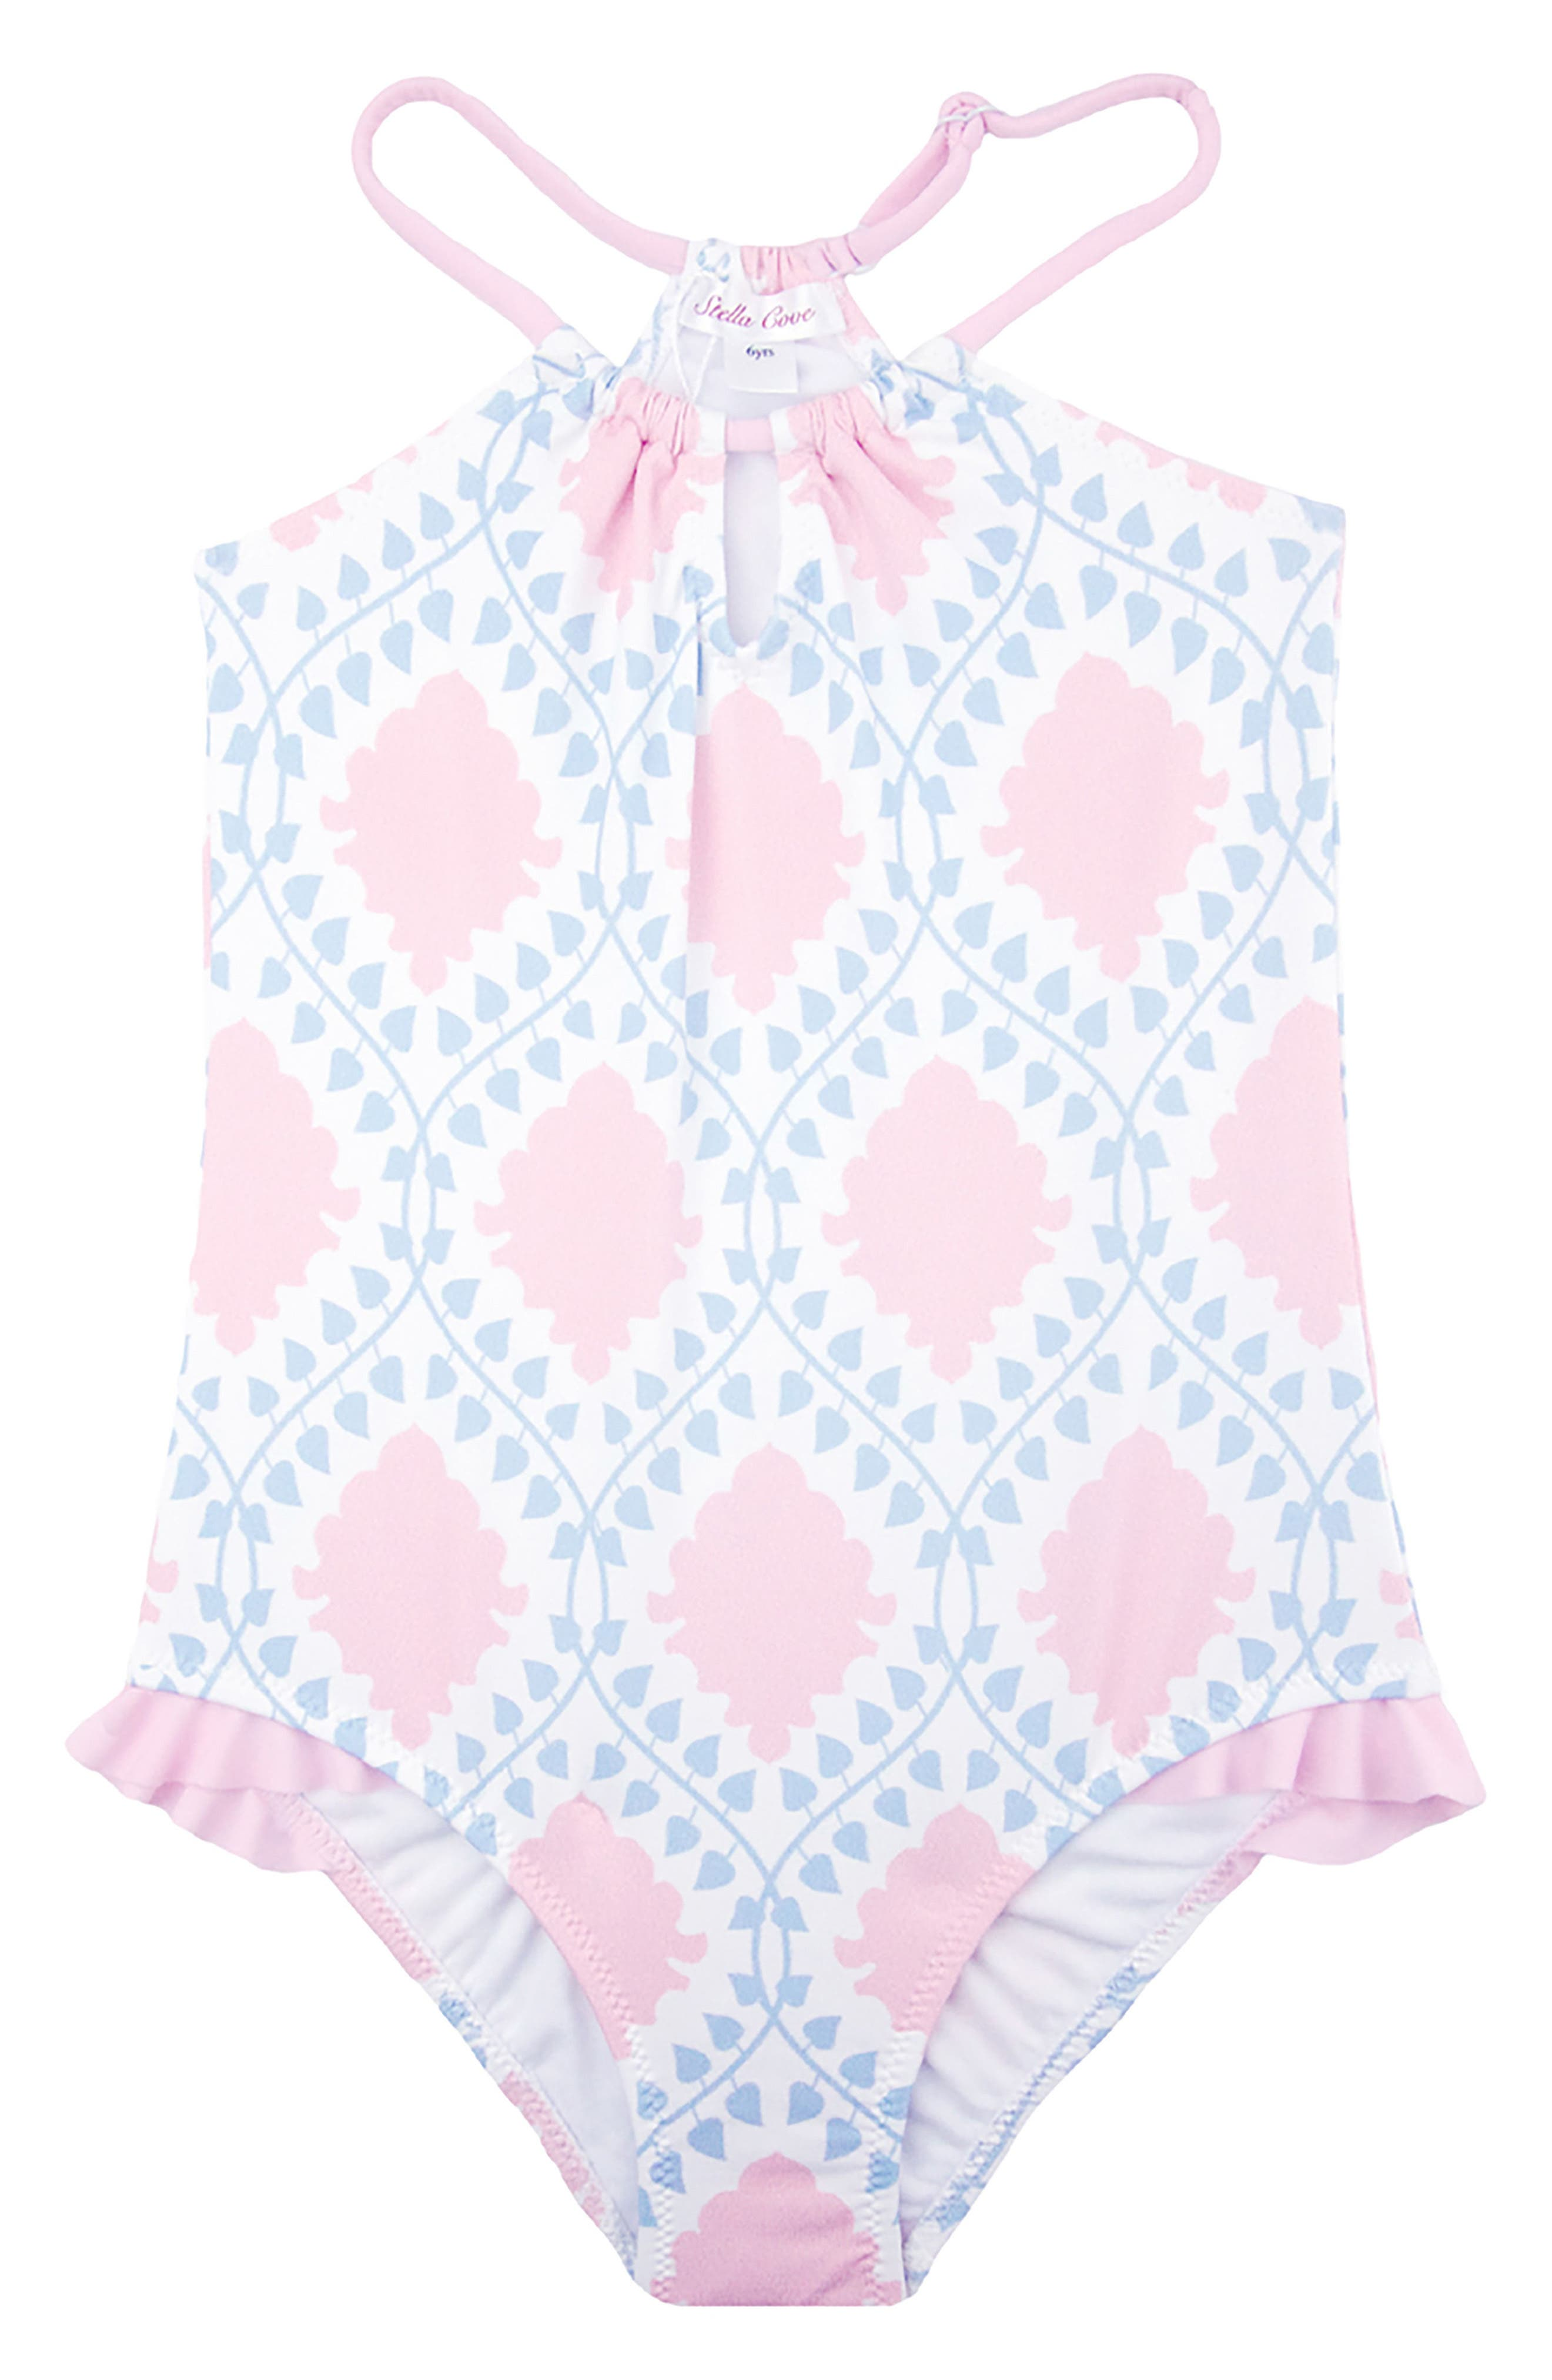 STELLA COVE Print One-Piece Swimsuit